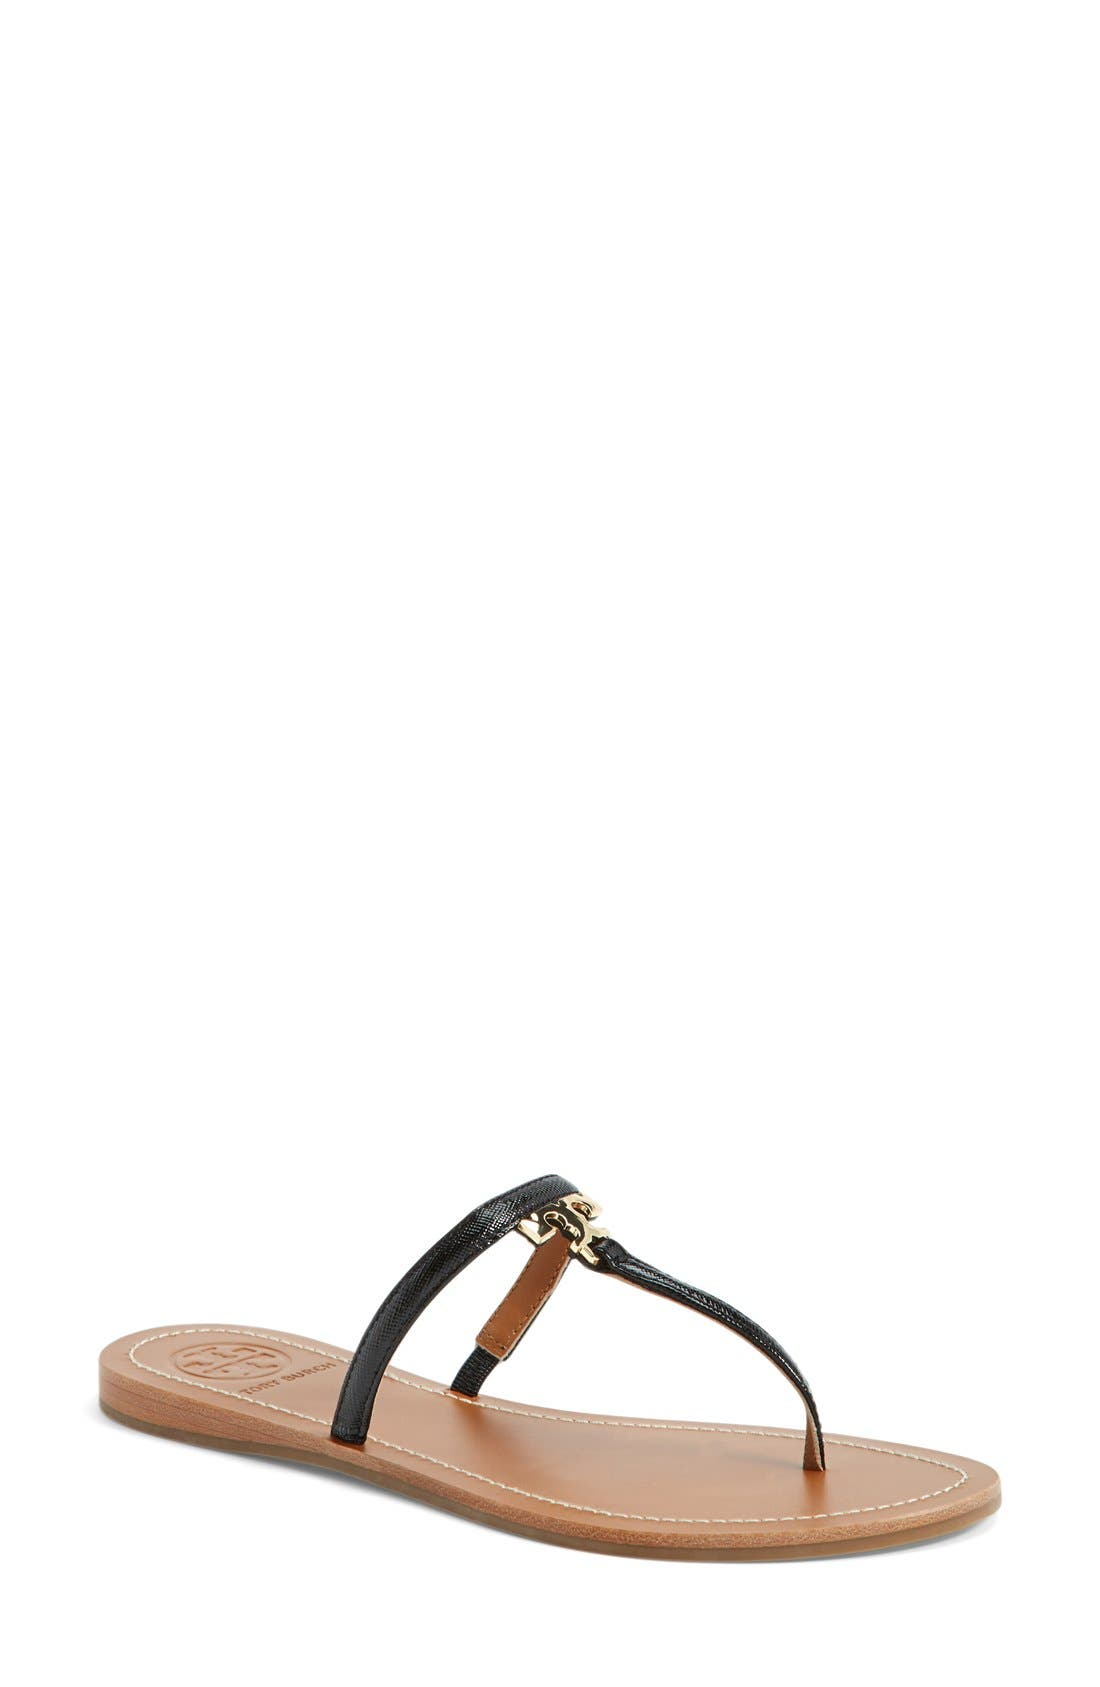 Tory Burch 'T' Logo Leather Thong